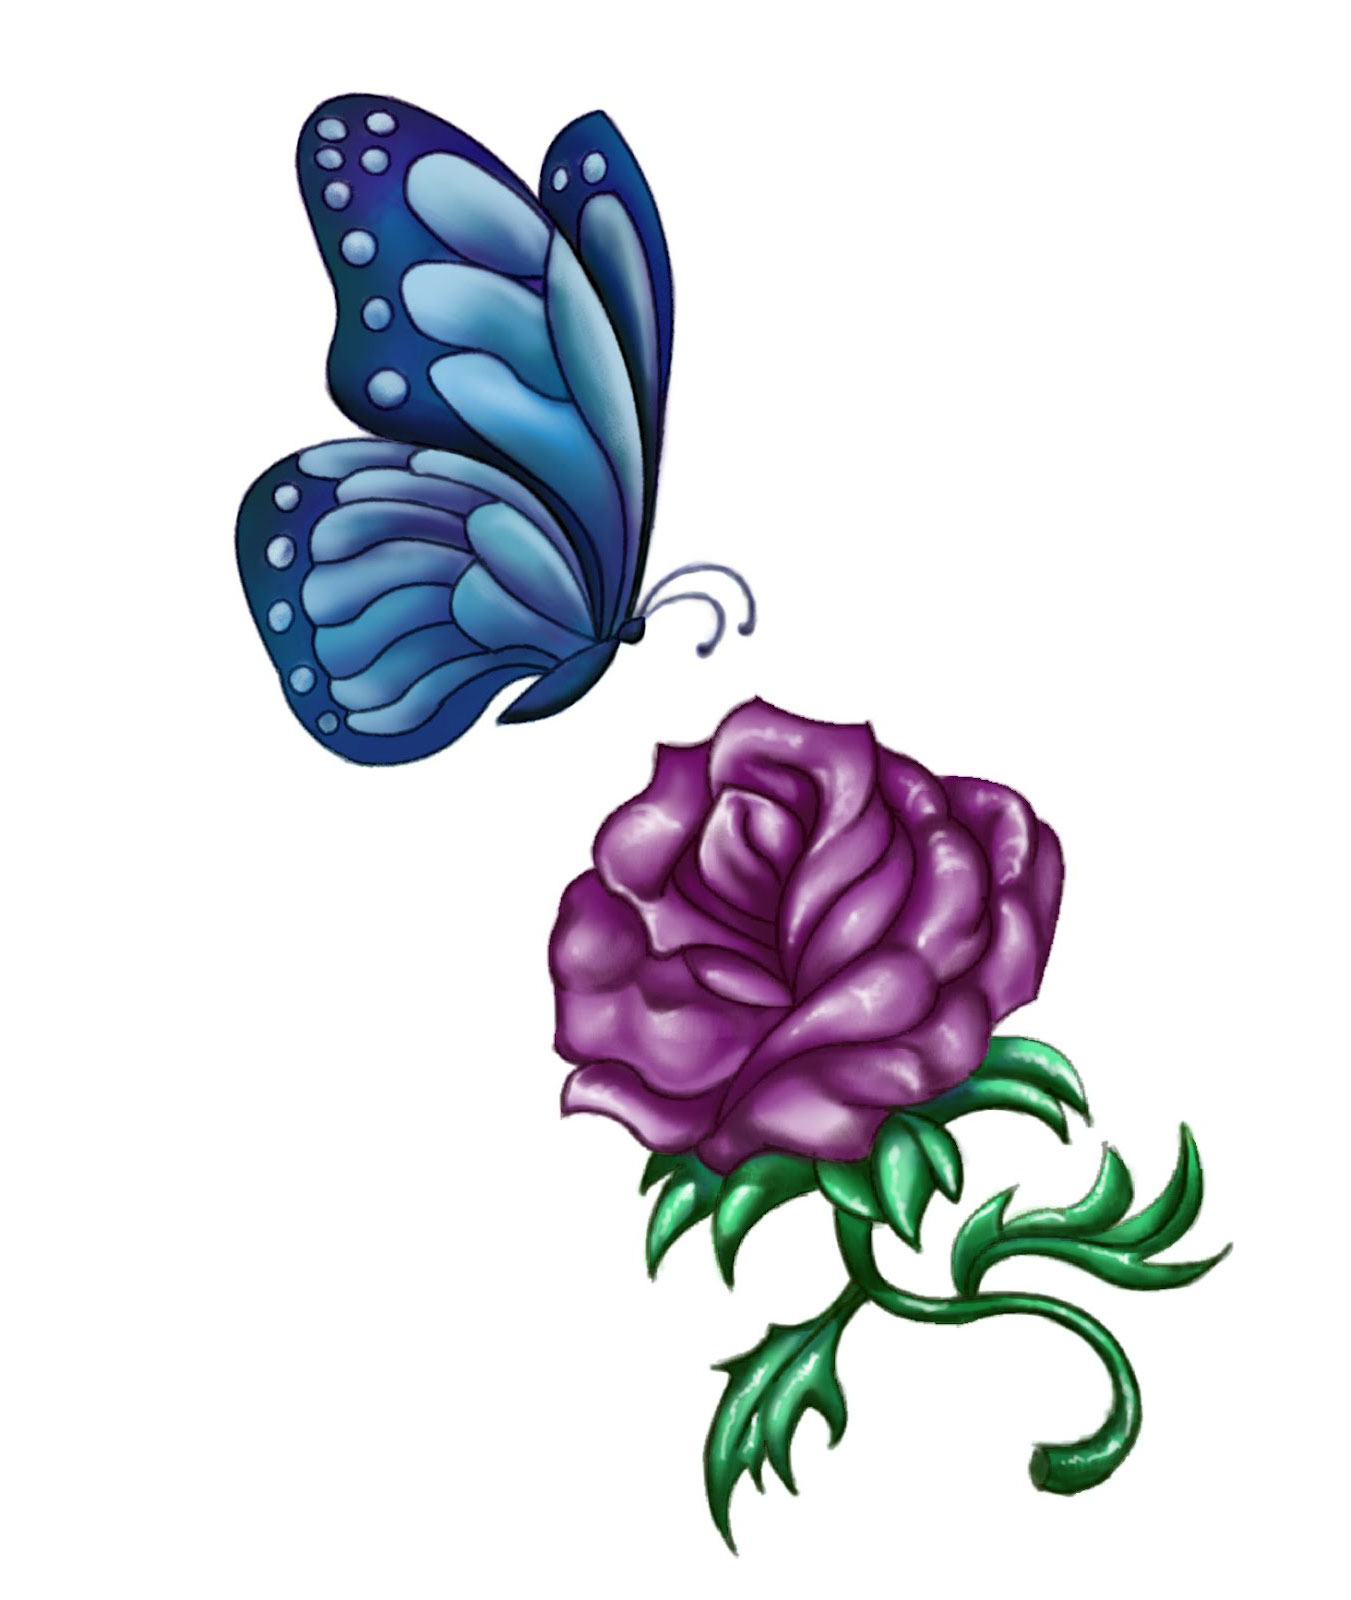 Tattoo Ideas With Roses: Purple Rose Tattoos